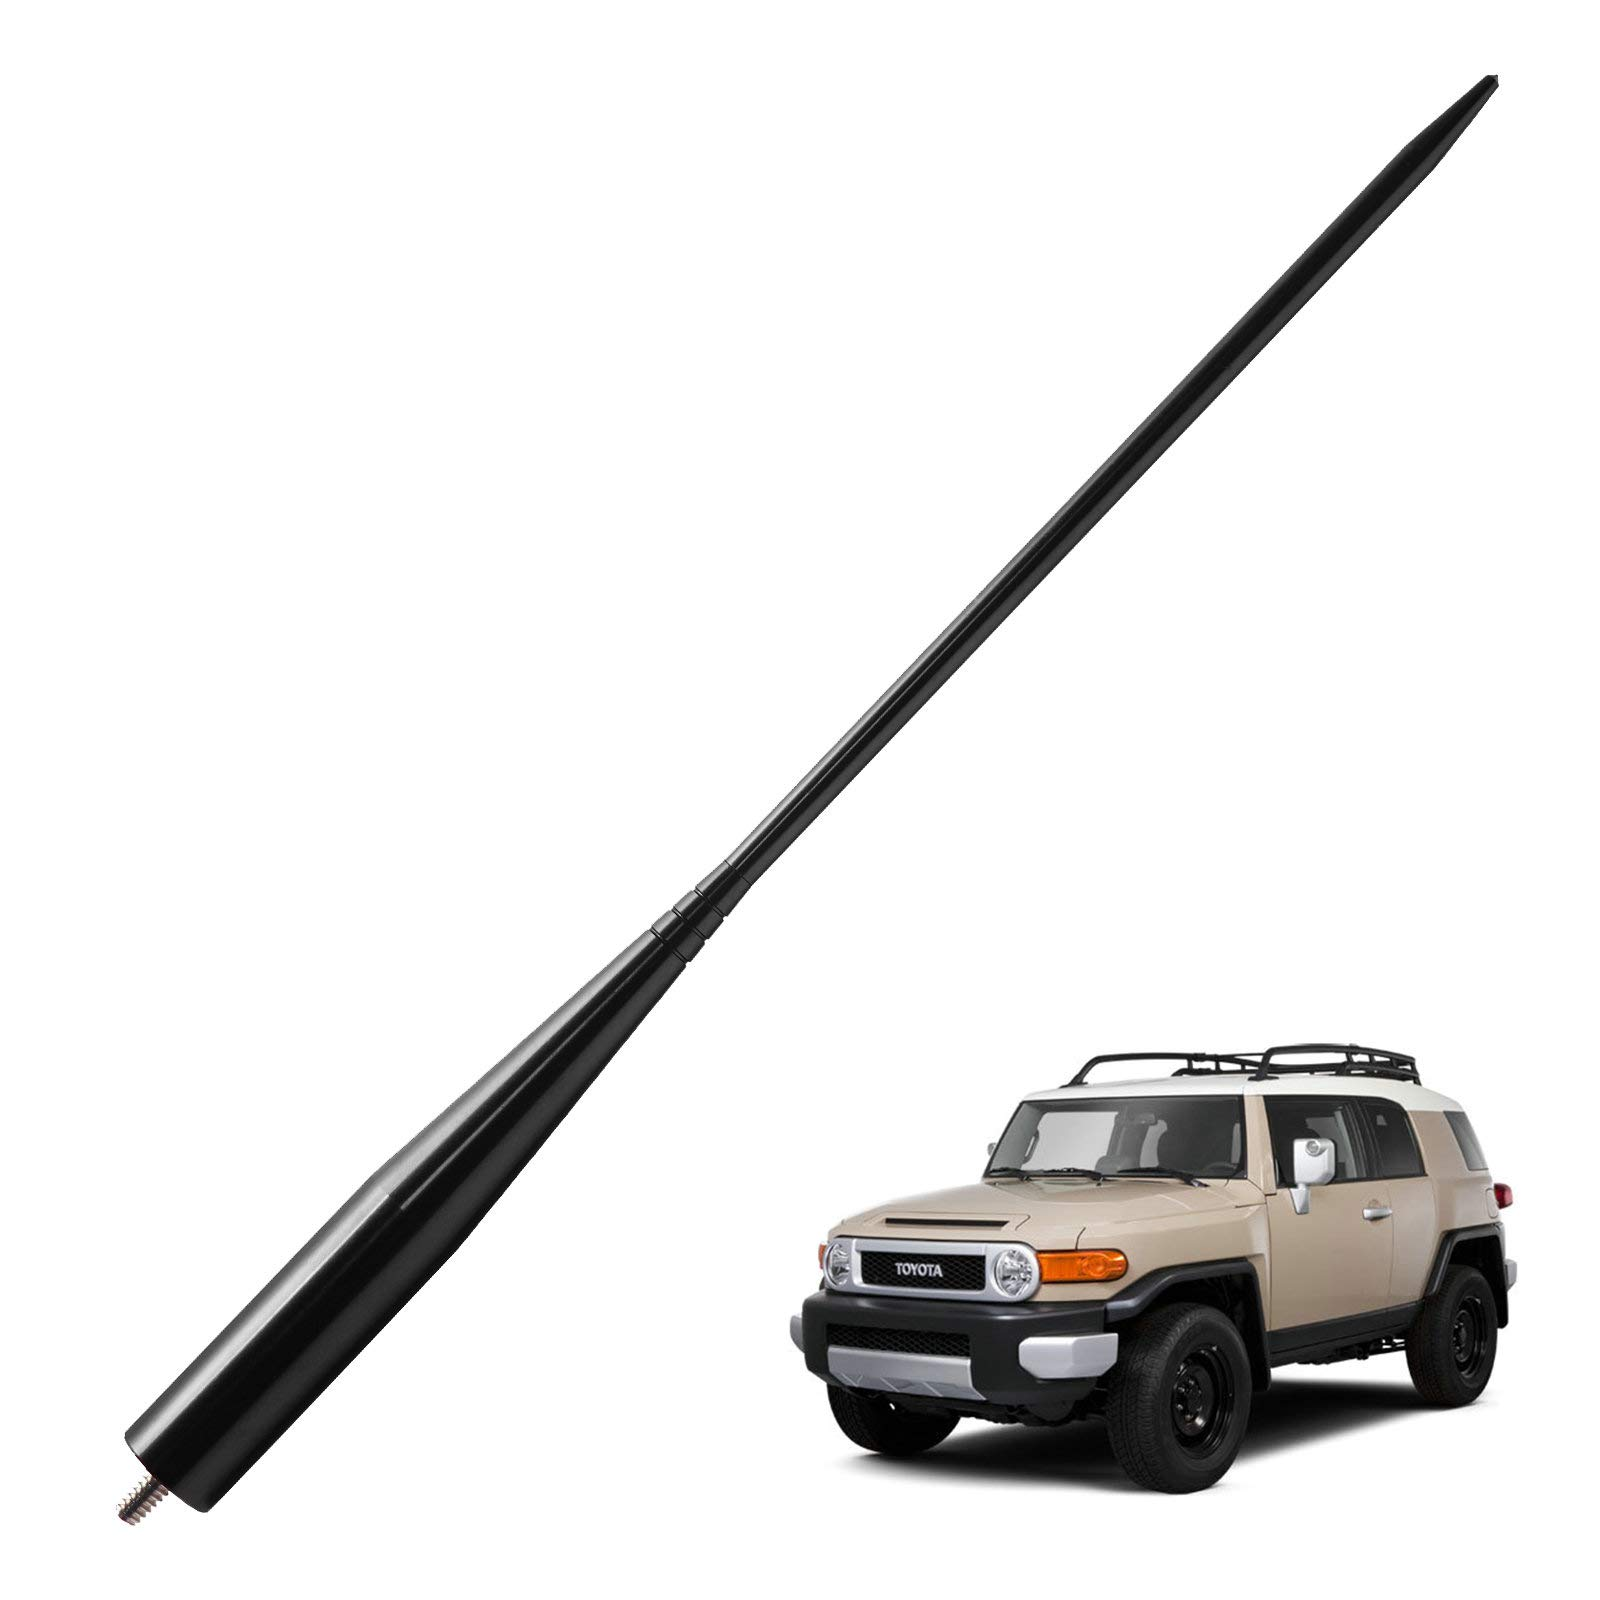 Black 13 inches JAPower Replacement Antenna Compatible with Toyota FJ Cruiser 2007-2014